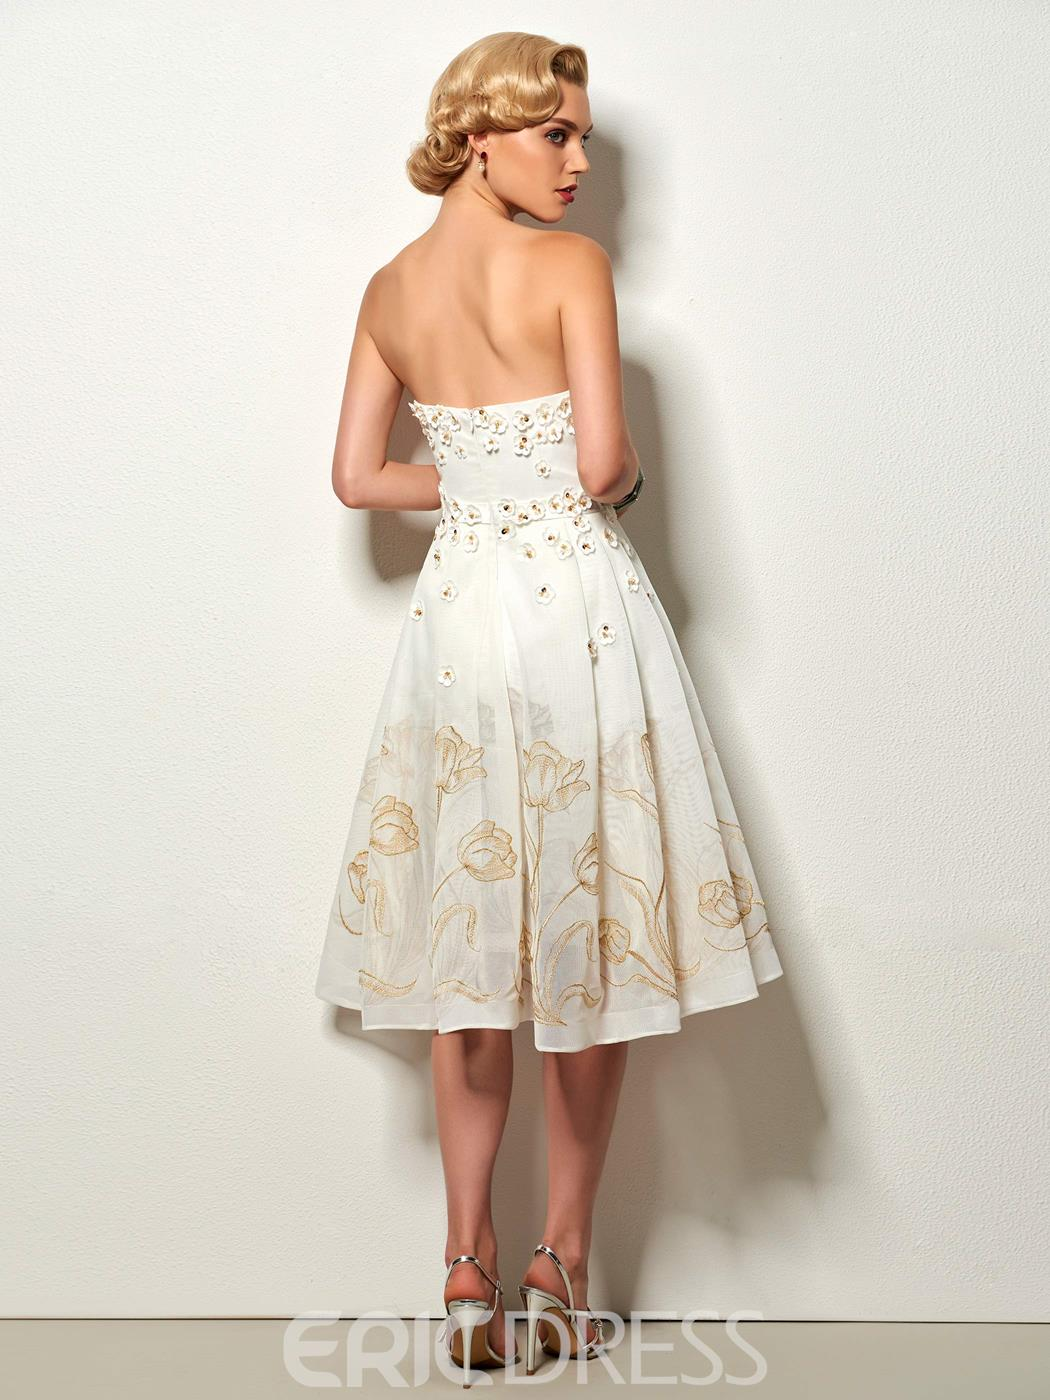 Ericdress Delicate Strapless Short A Line Lace Cocktail Dress